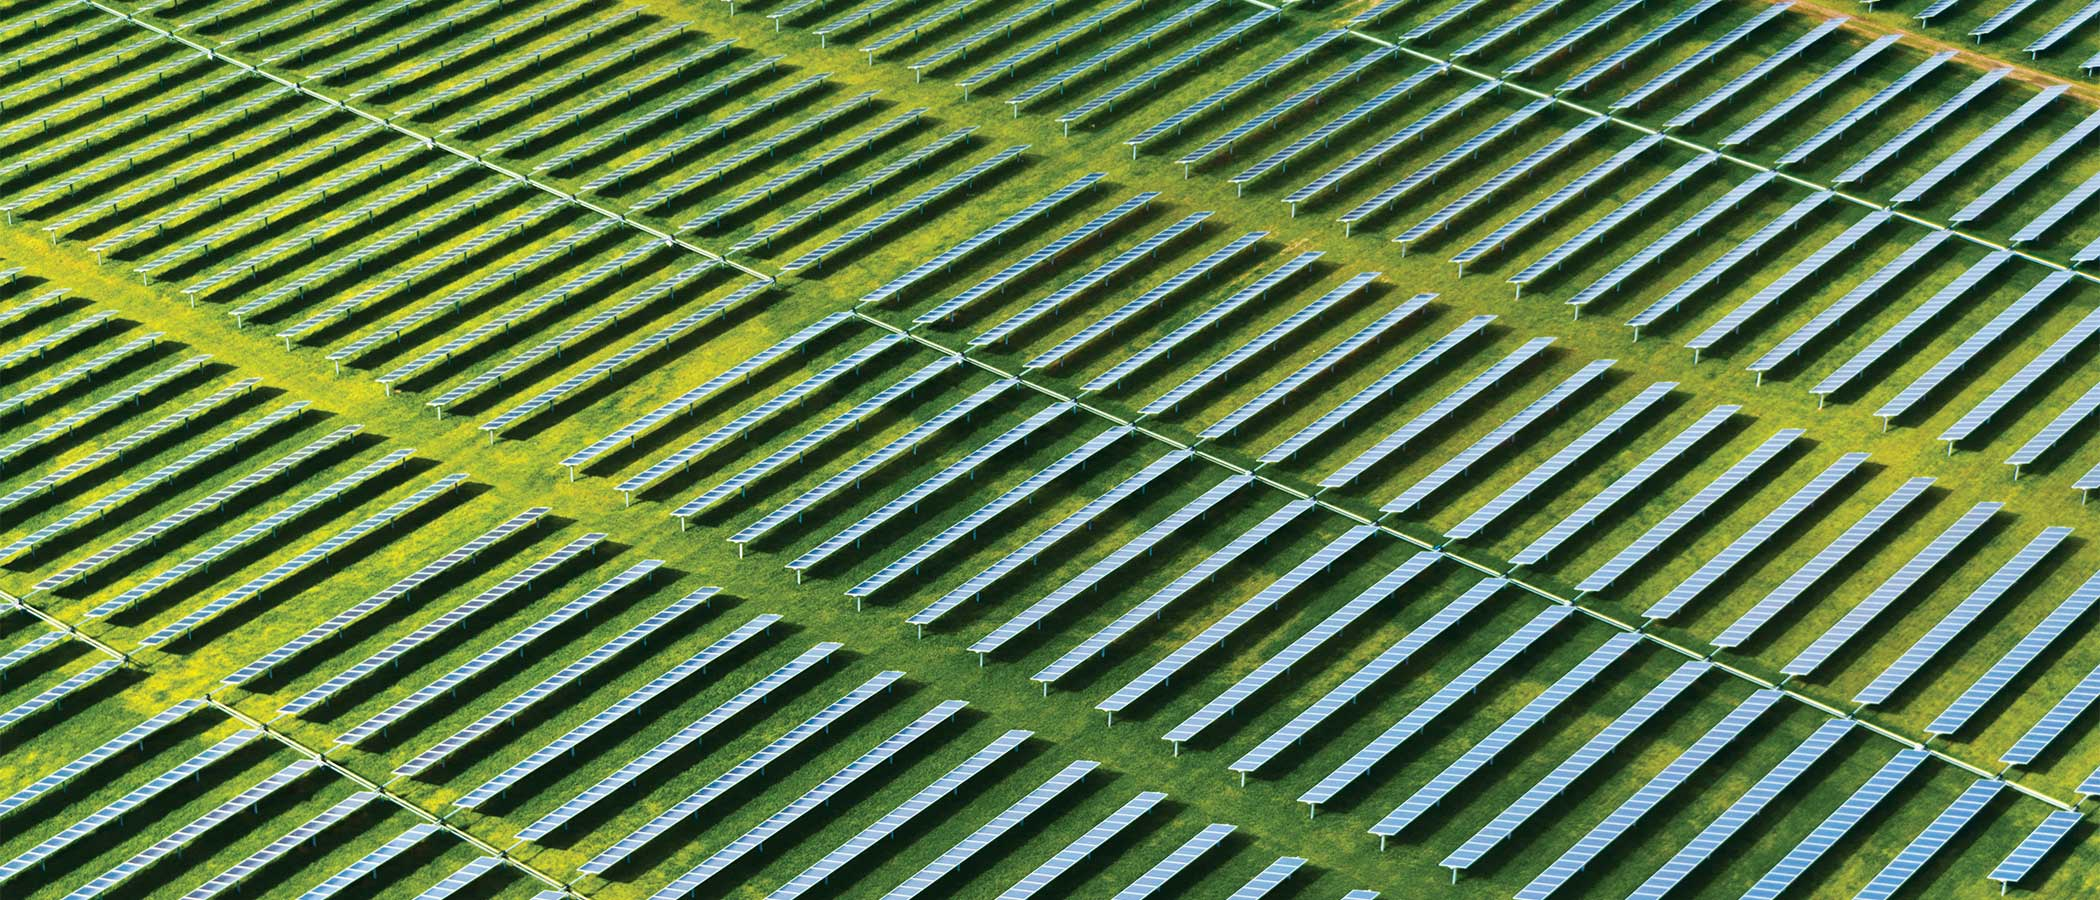 Aerial view of a solar farm with many rows of solar panels in a field.